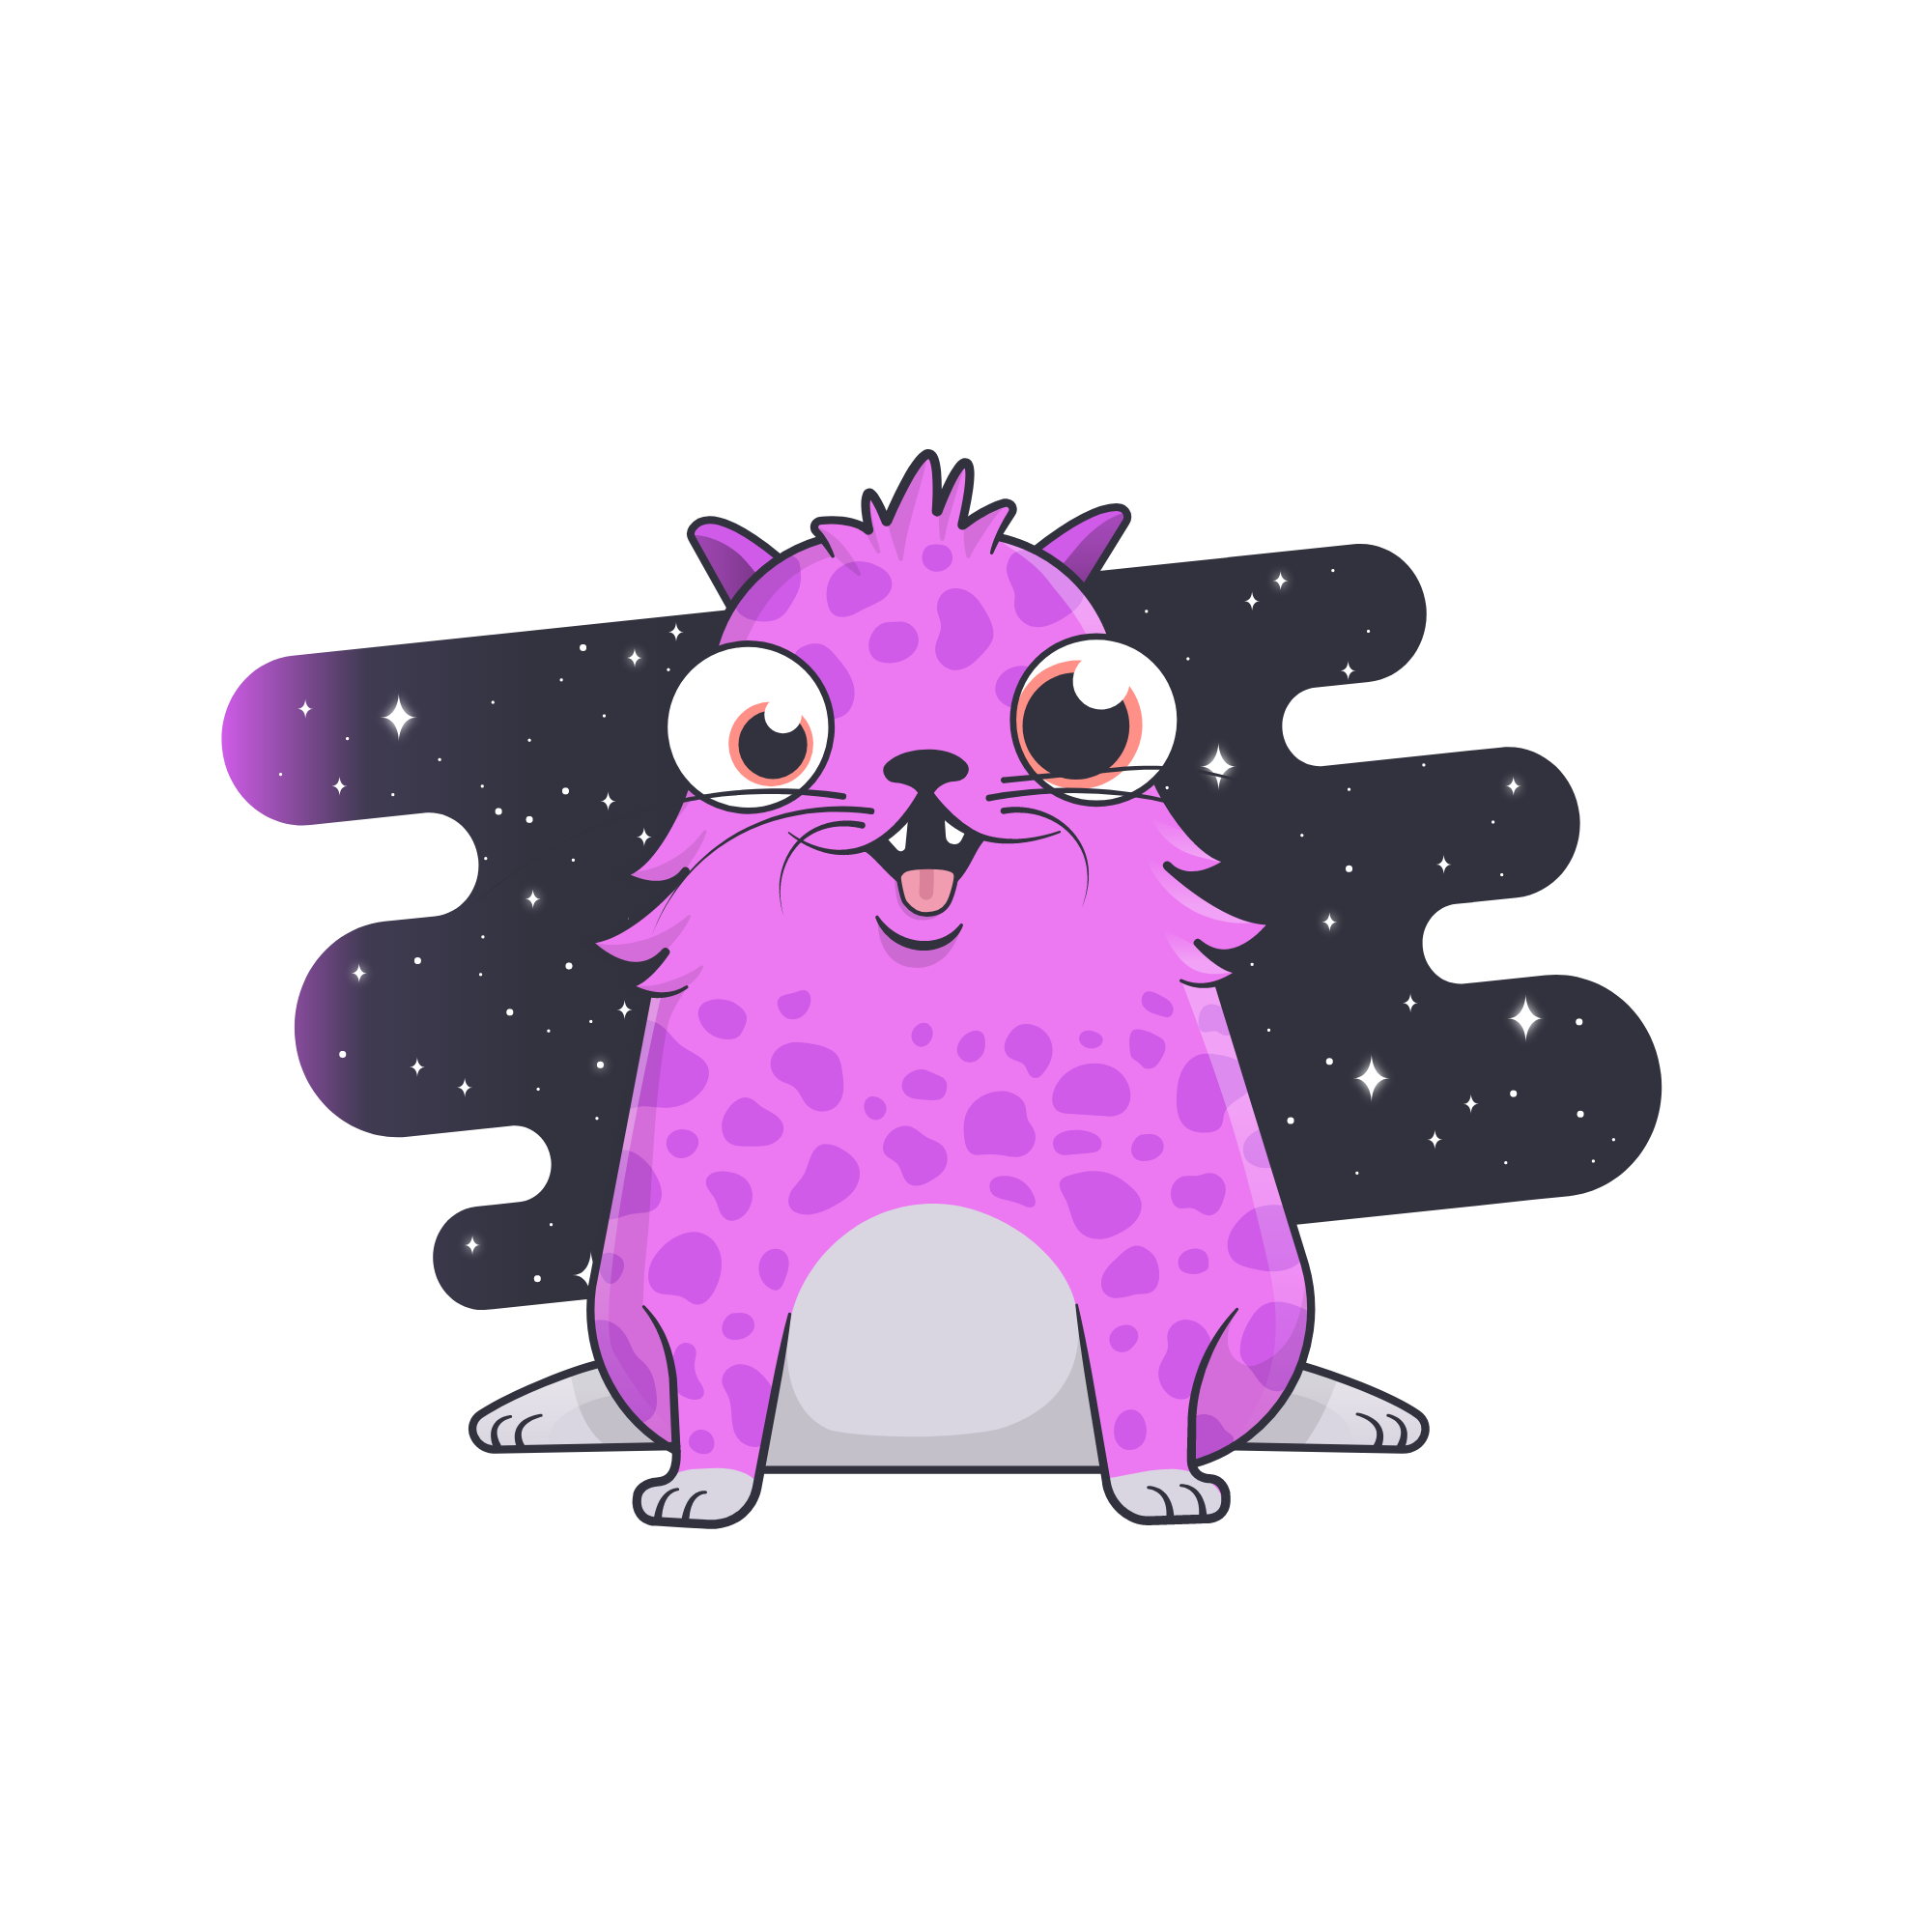 cryptokitty #1810307